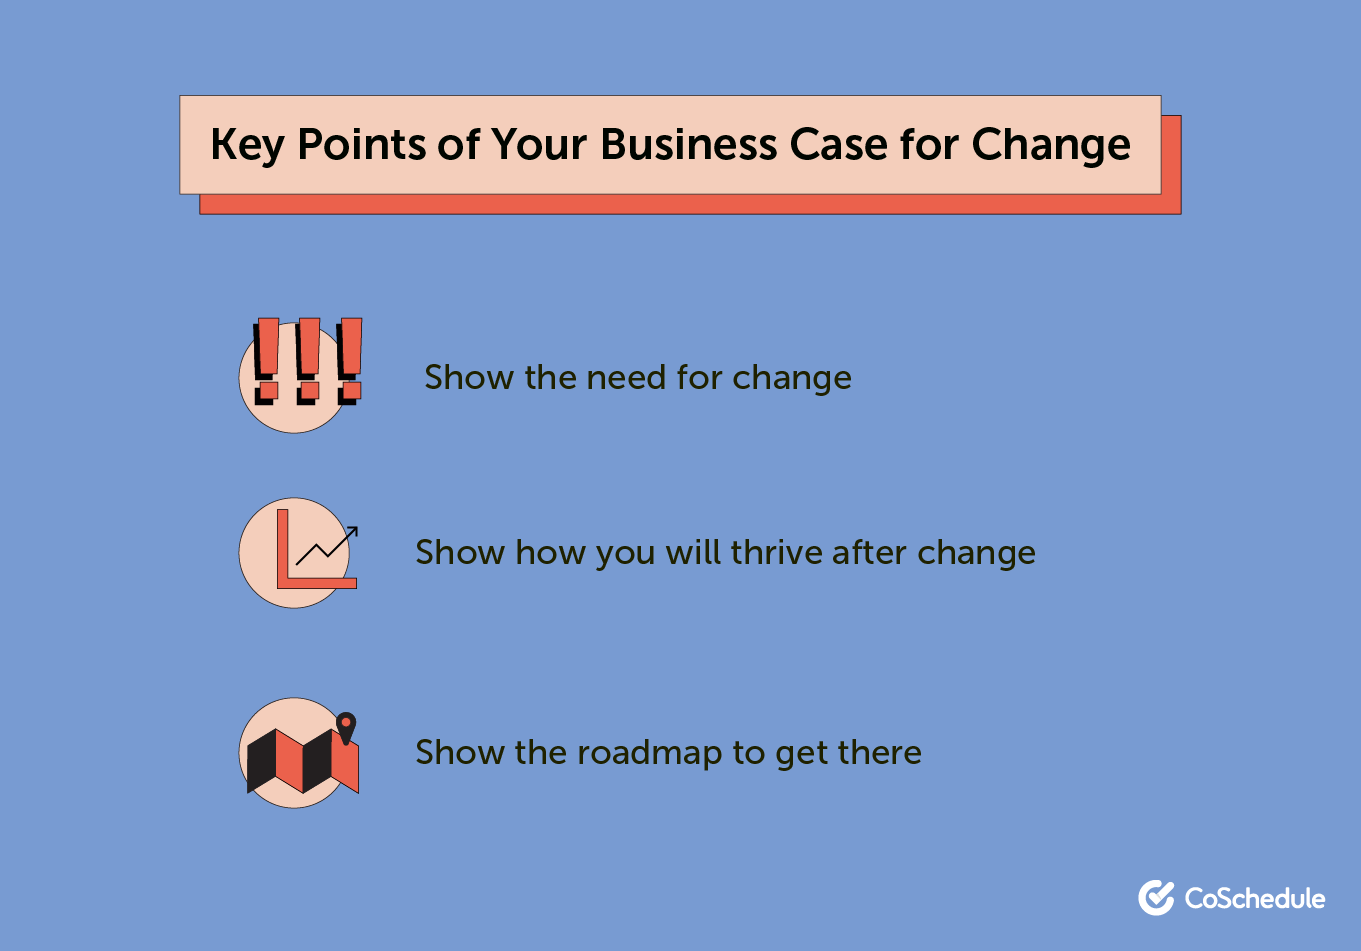 Key points of your business case for change